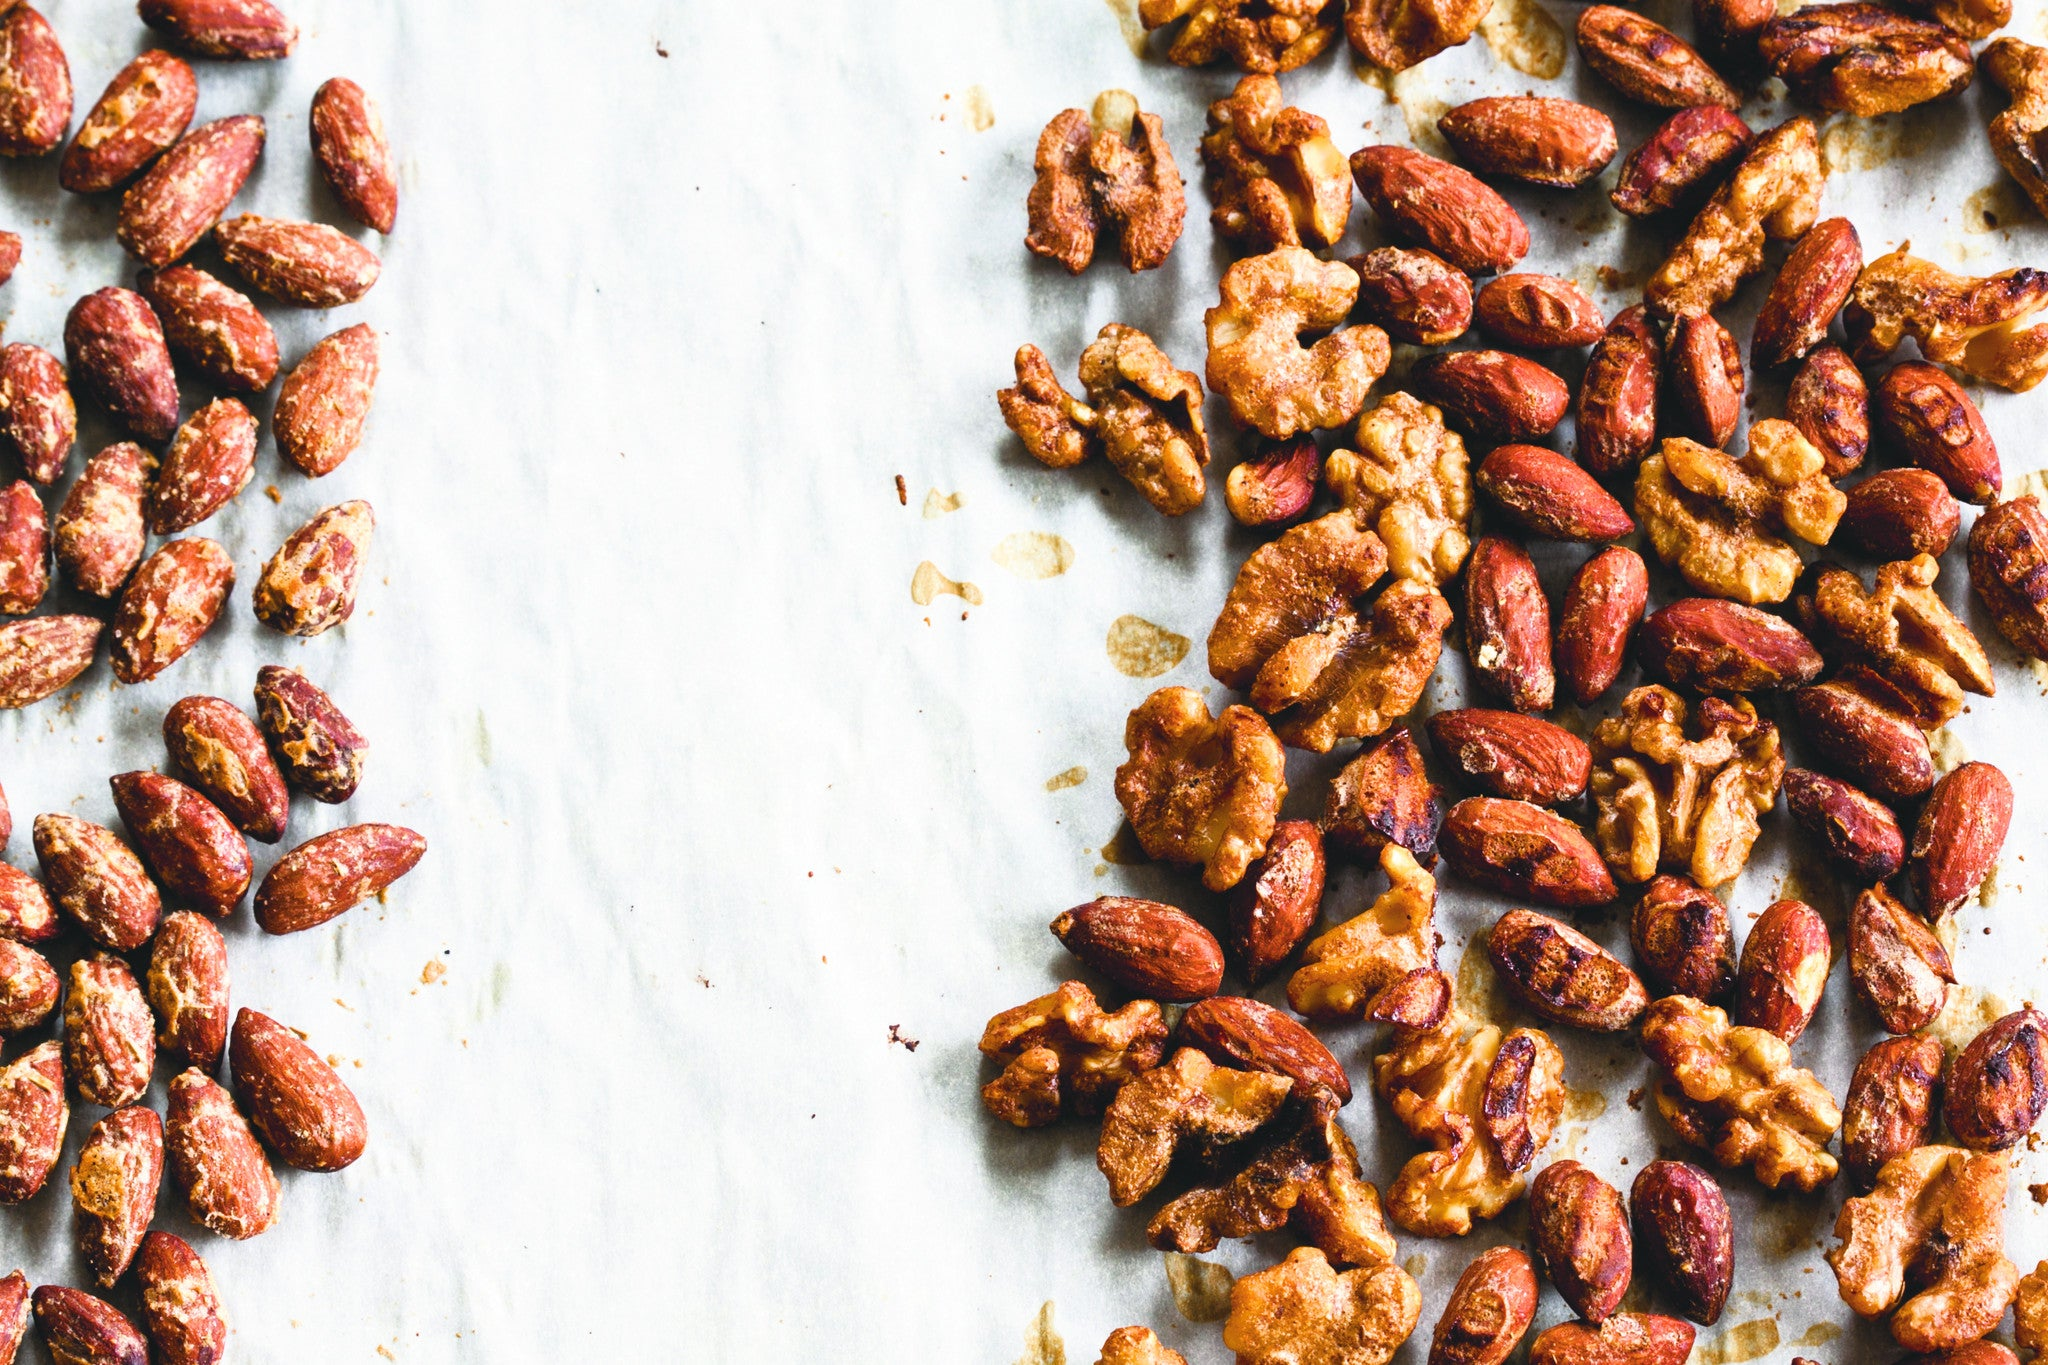 Festive Savoury Spiced Nuts with Cumin & Cayenne